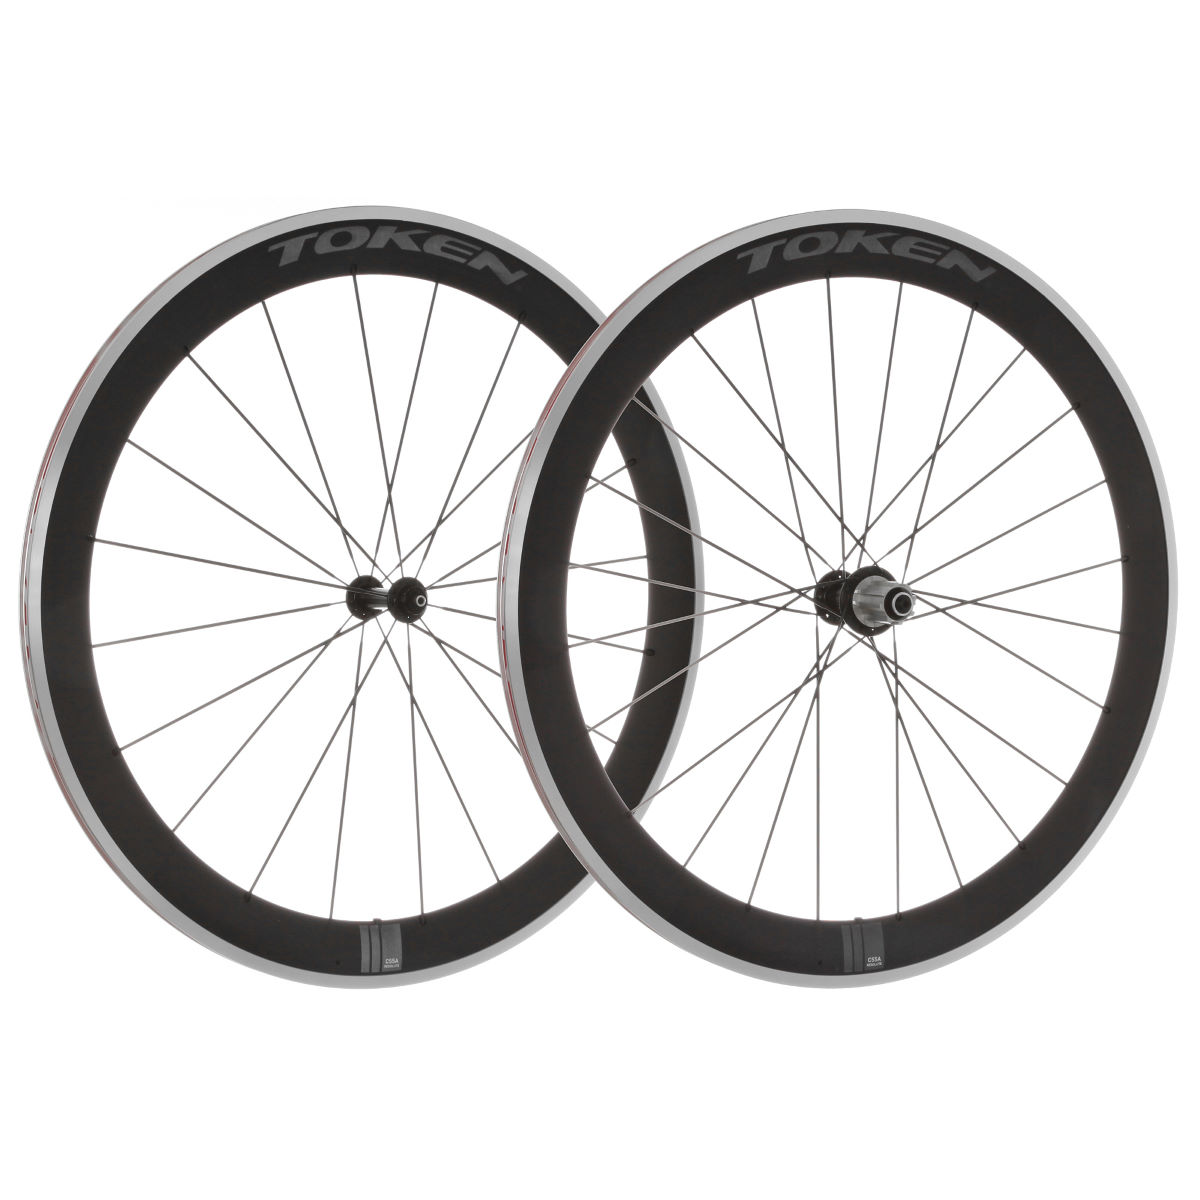 Paire de roues Token C55A (alliage/carbone) - Campagnolo 10/11 Spd